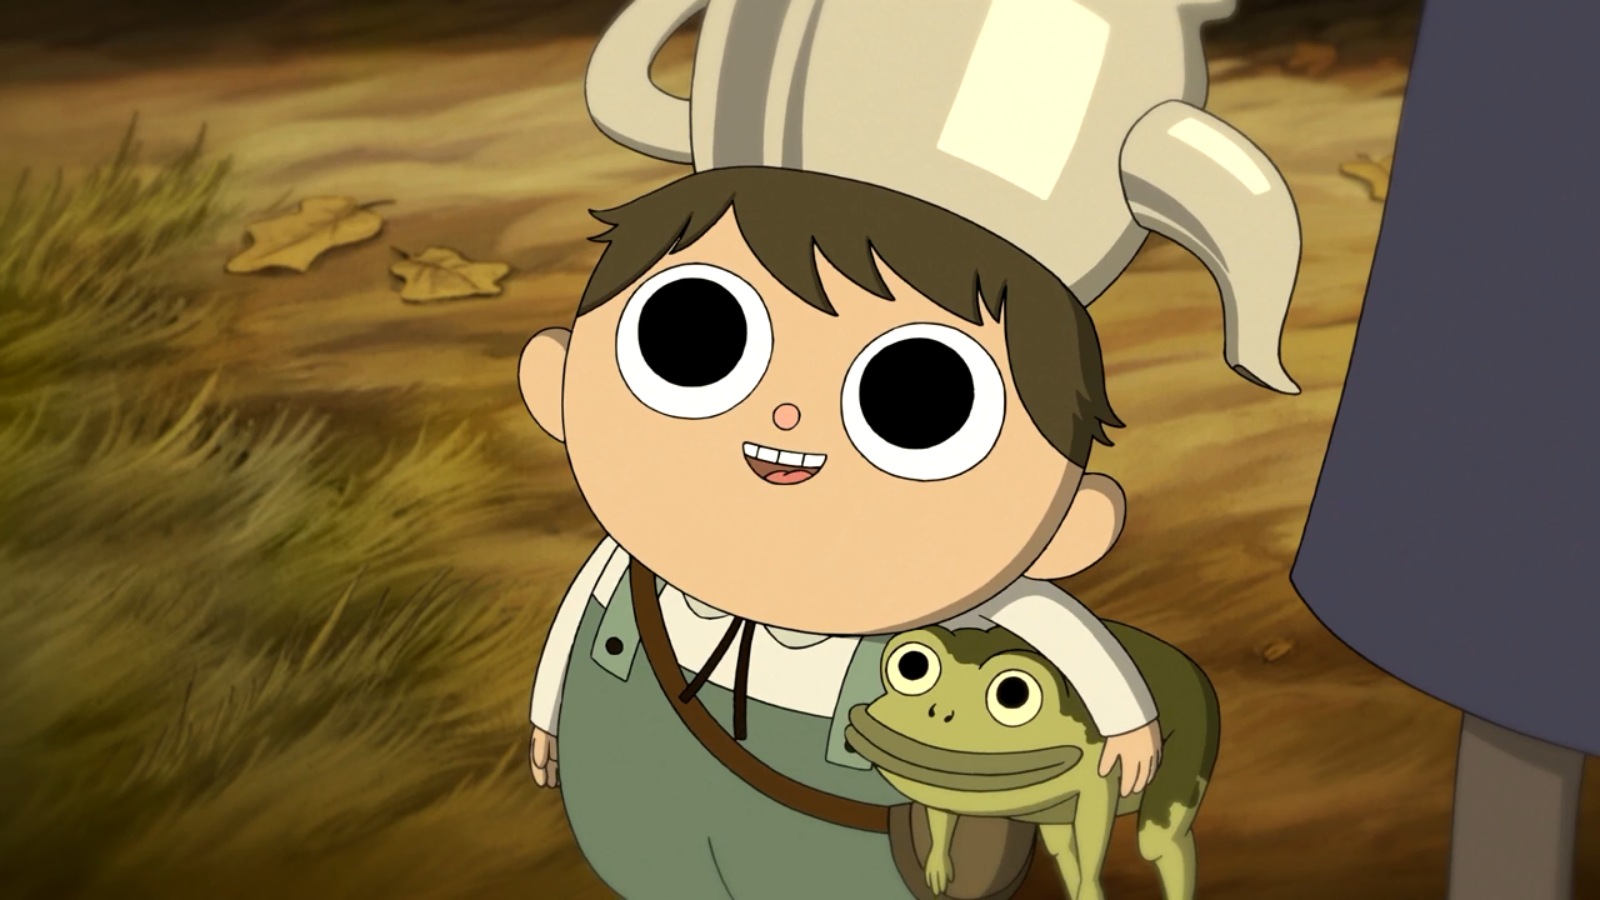 Fower42/PG Proposal: Greg (Over the Garden Wall)